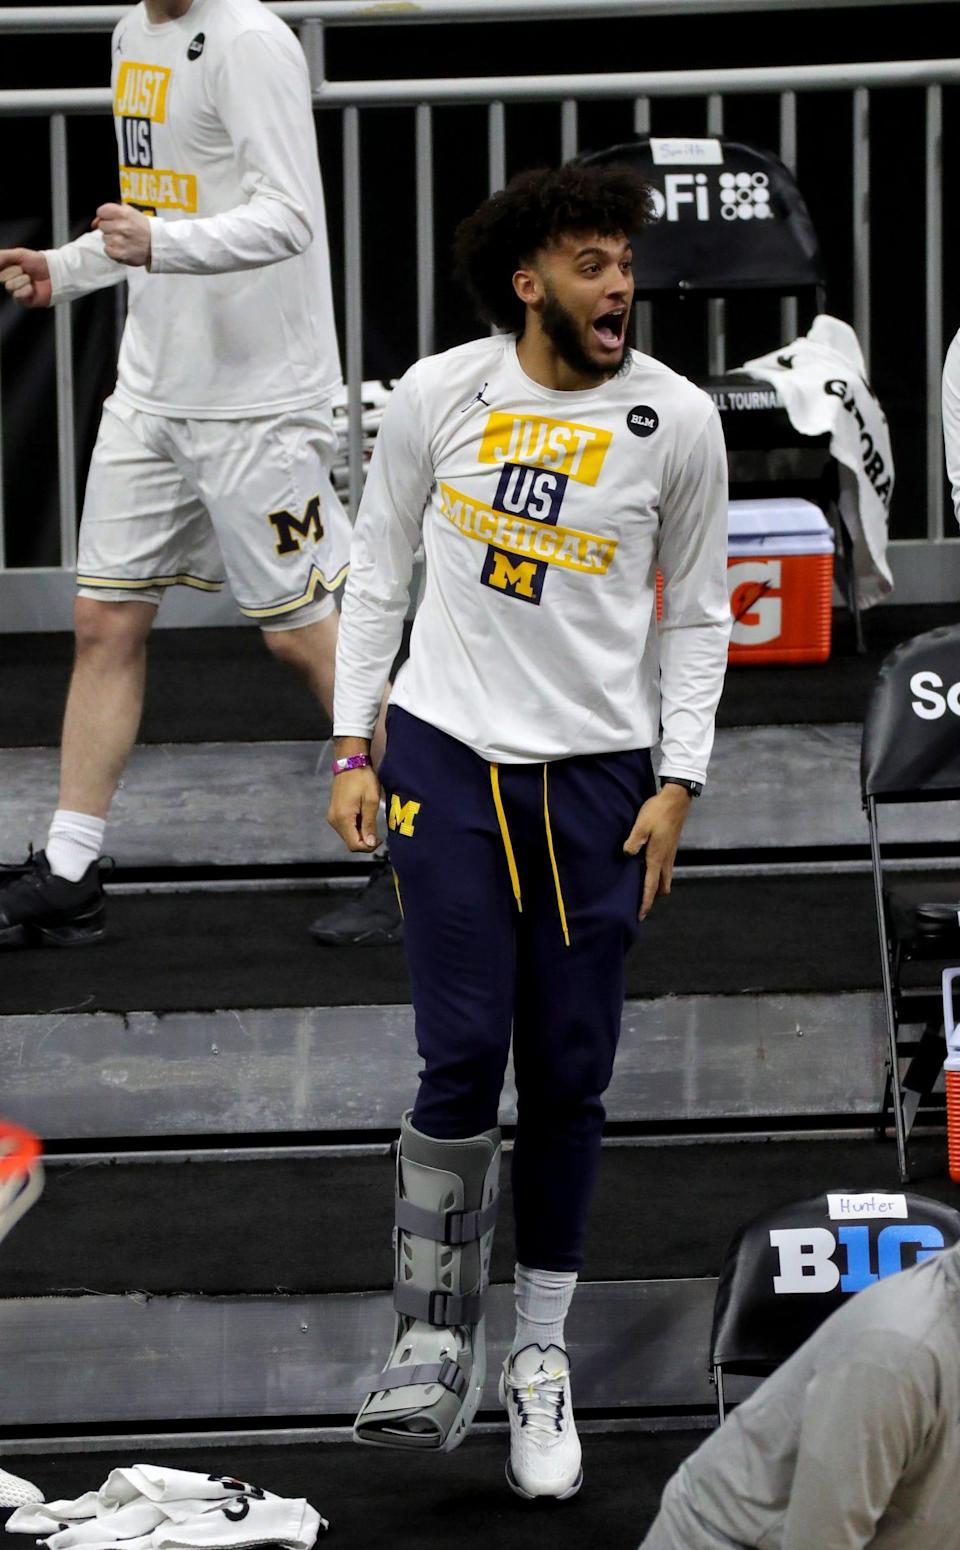 Michigan's Isaiah Livers, out with a foot injury, cheers during the Big Ten tournament semifinal against Ohio State on Saturday, March 13, 2021 at Lucas Oil Stadium in Indianapolis.